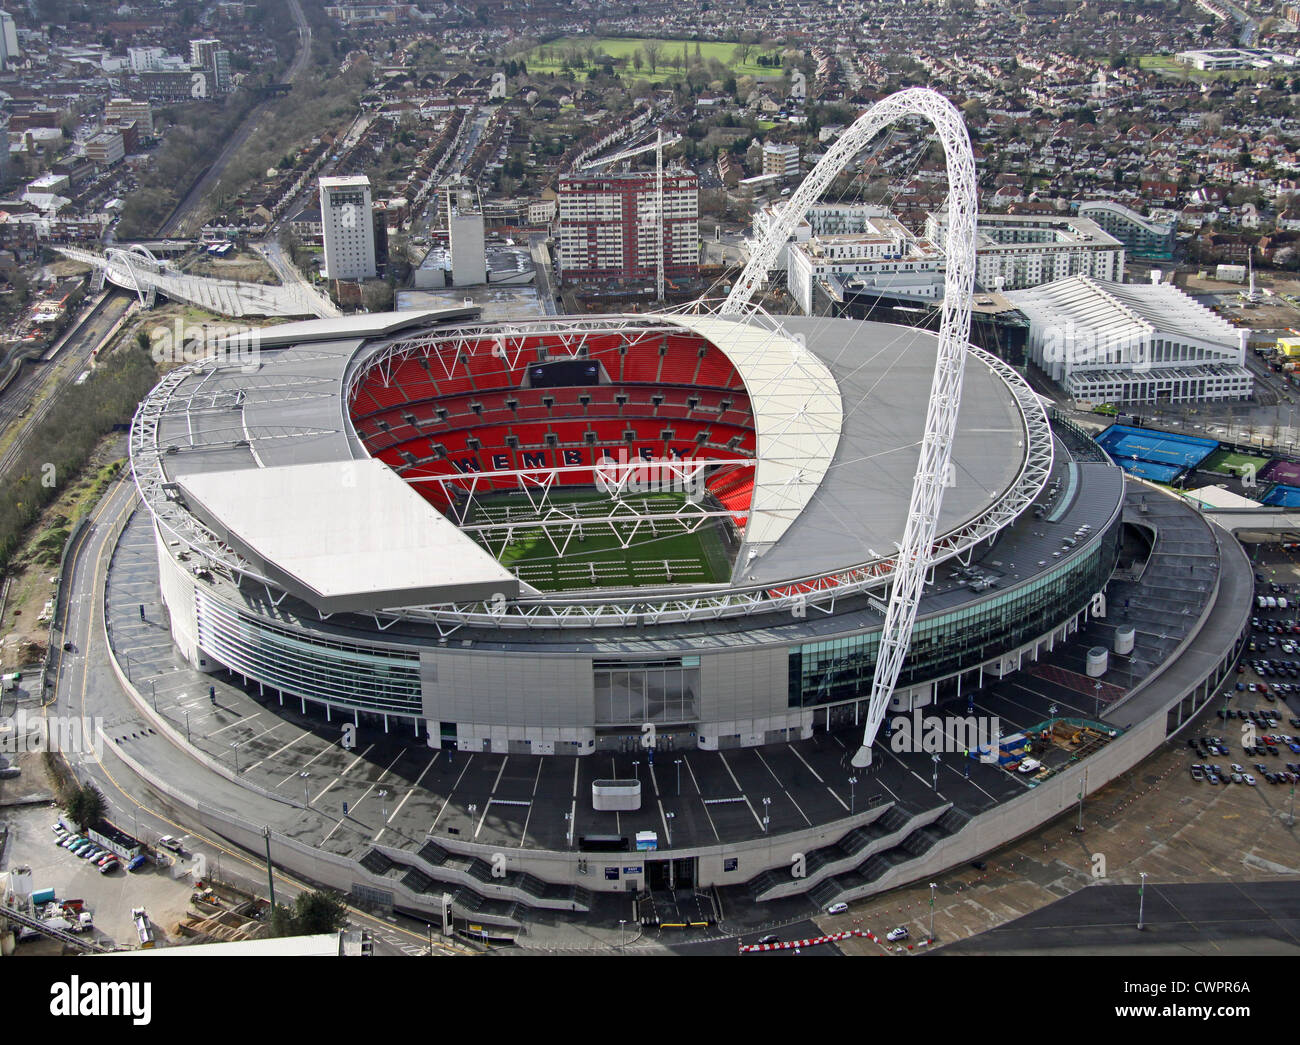 aerial view of Wembley Stadium, London - Stock Image